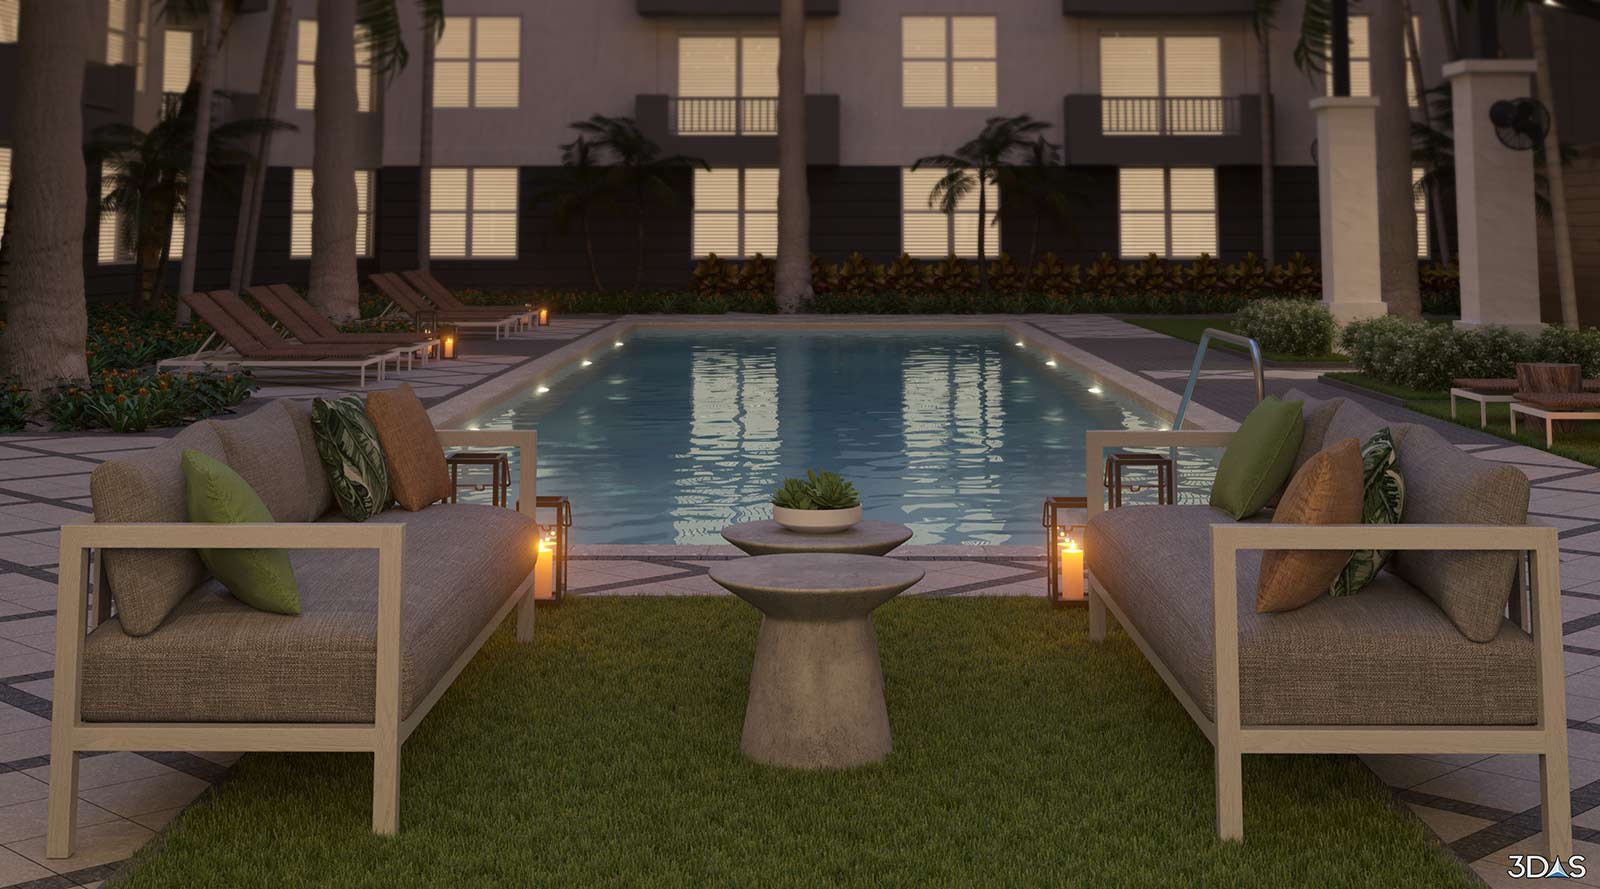 Couches Overlooking Pool Resort in Miami - Avana Bayview Apartments